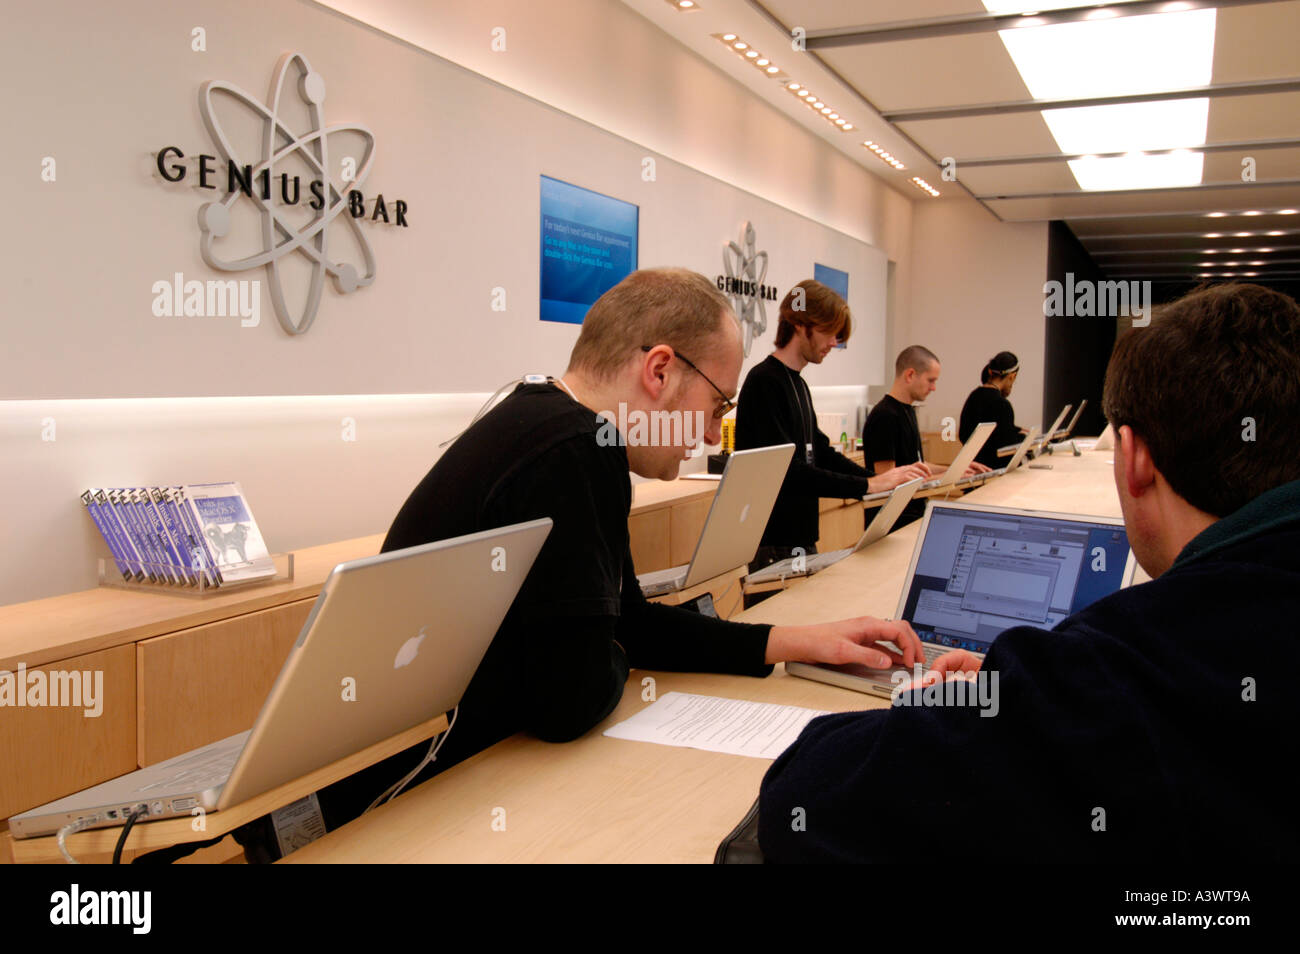 appointment with genius bar uk